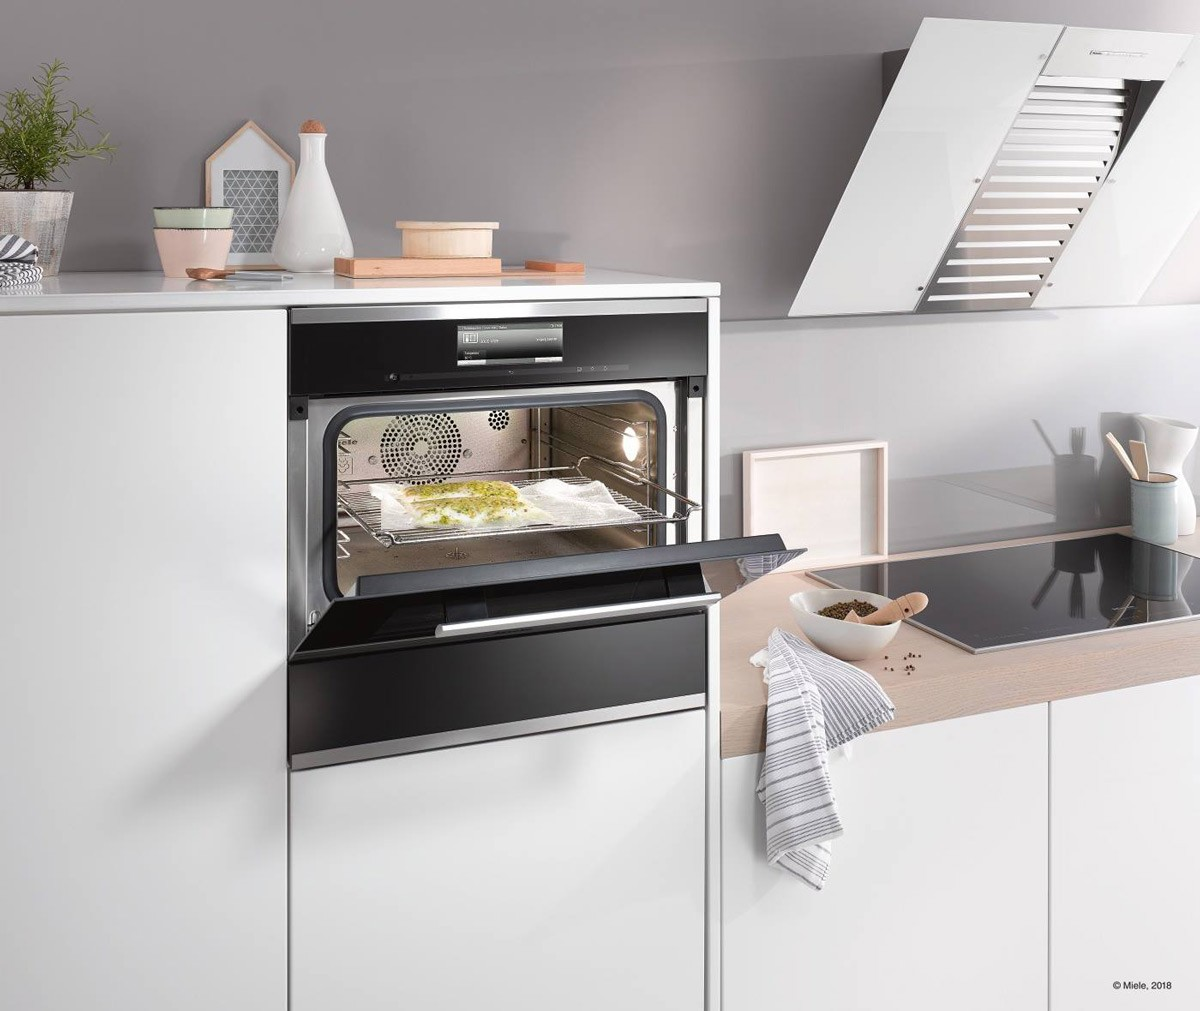 Zelari_electrodomesticos-premium_Kitchens_Household-Appliances